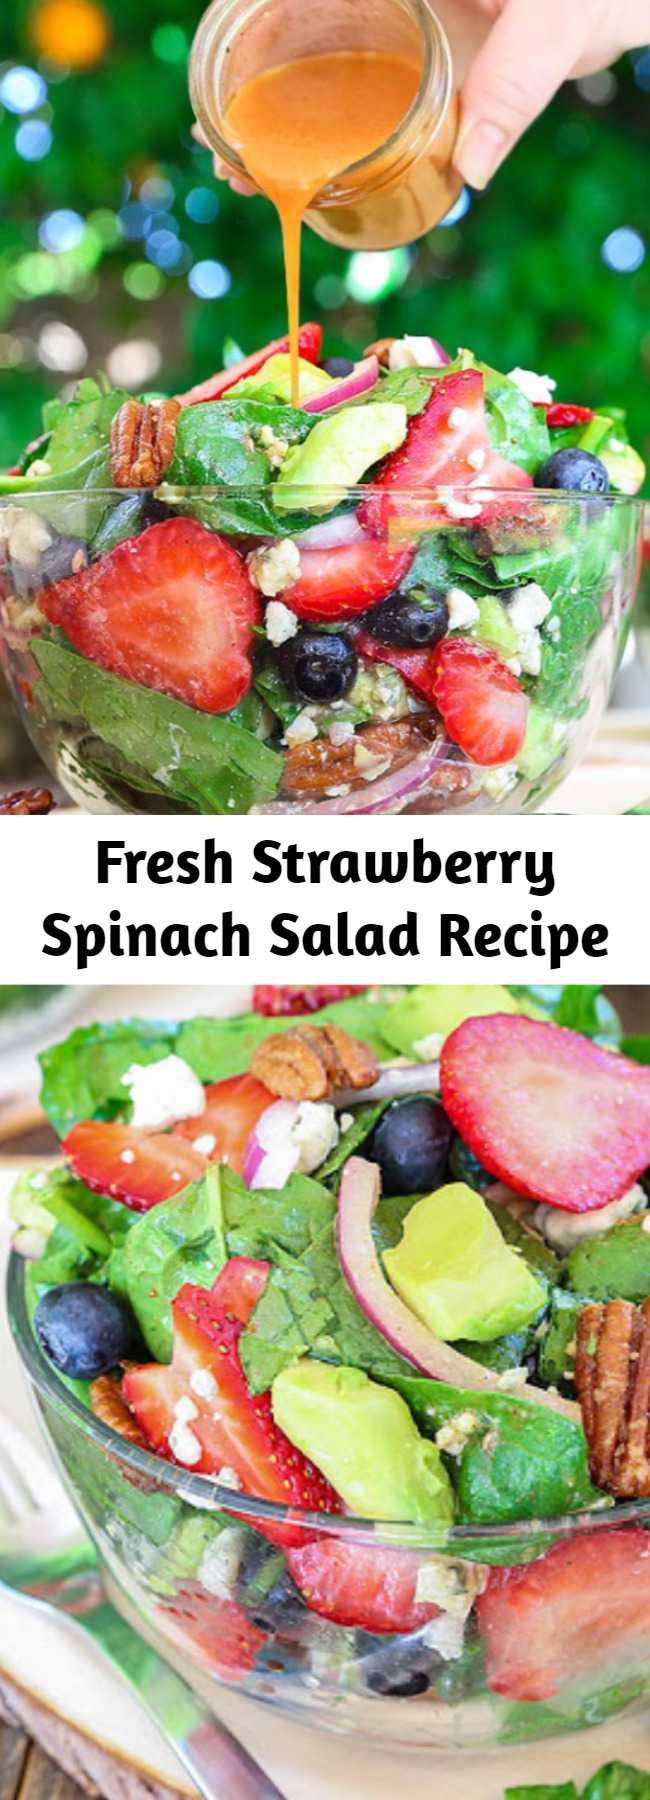 Fresh Strawberry Spinach Salad Recipe - Best Ever Strawberry Spinach Salad will rock your world! This simple recipe is a celebration of summers bounty in the most spectacular salad you will ever eat. Fresh crisp spinach salad is taken to another level with bursts of sweetness from fresh summer fruit and buttery avocado. It is tossed in a sweet and tangy vinaigrette and topped with crunchy nuts and creamy cheese. #salad #strawberry